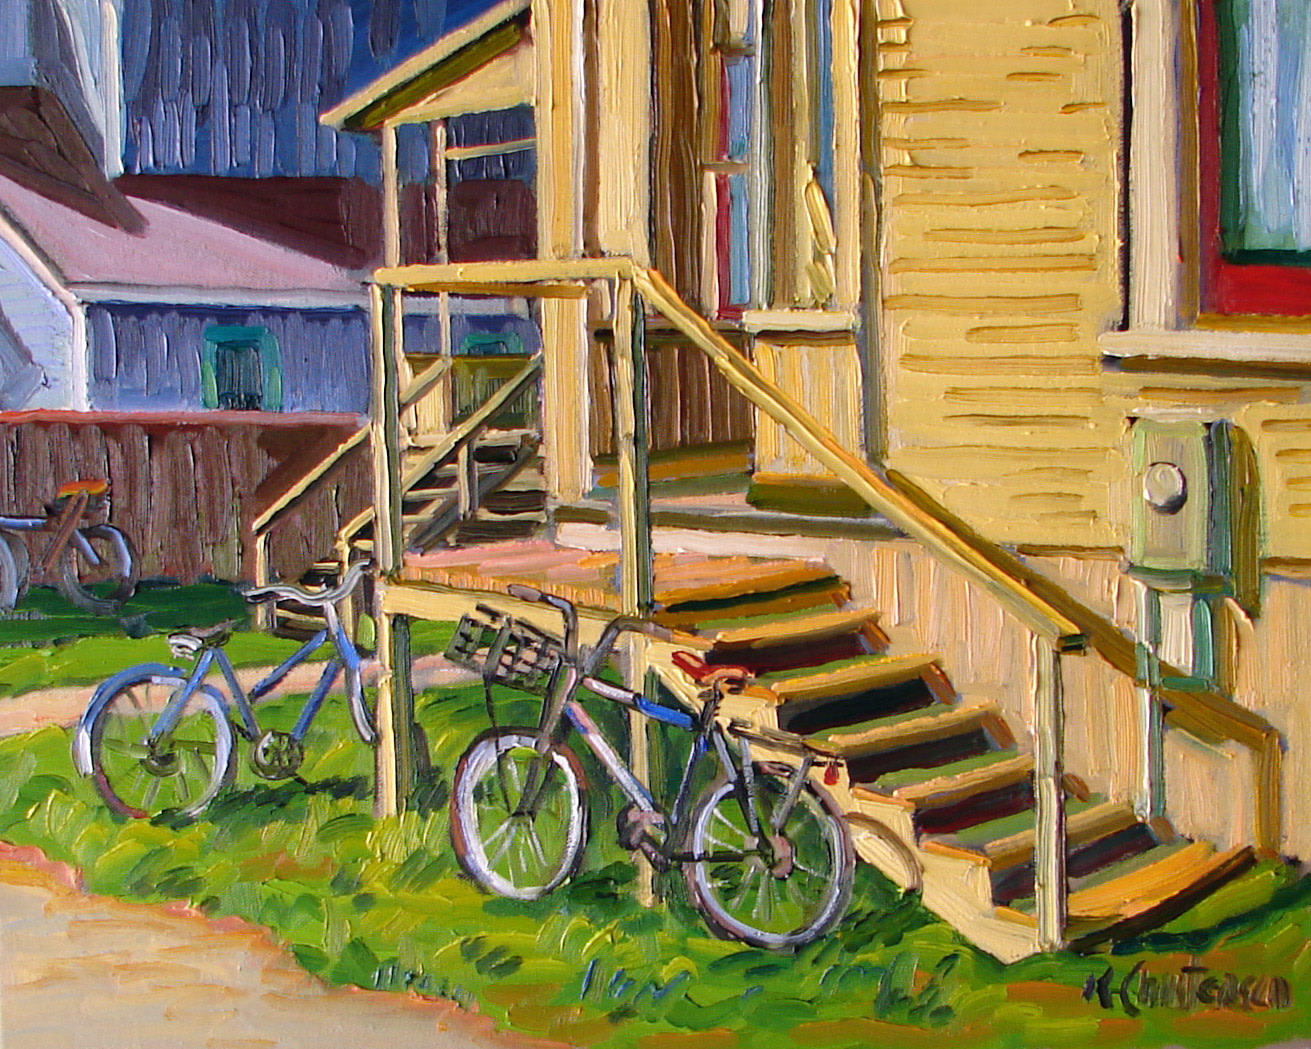 Back Steps and Bikes